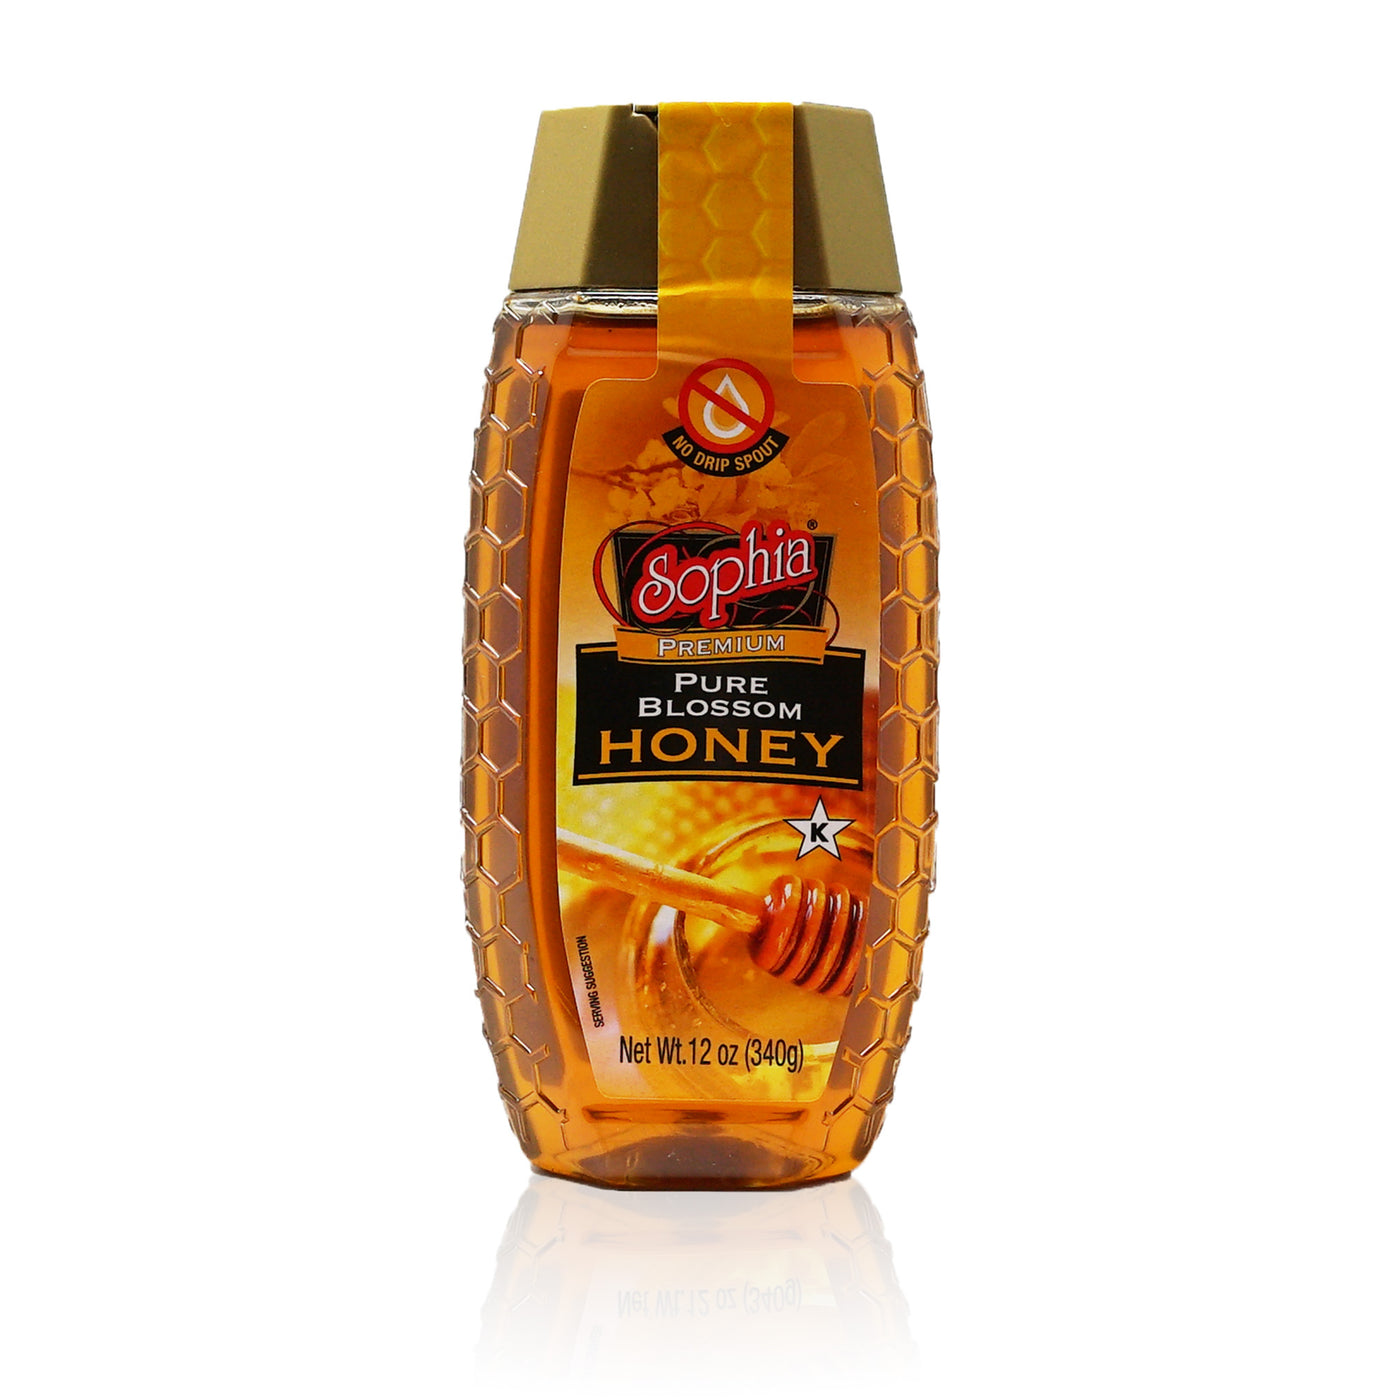 Sophia Honey - Pure Blossom 12oz